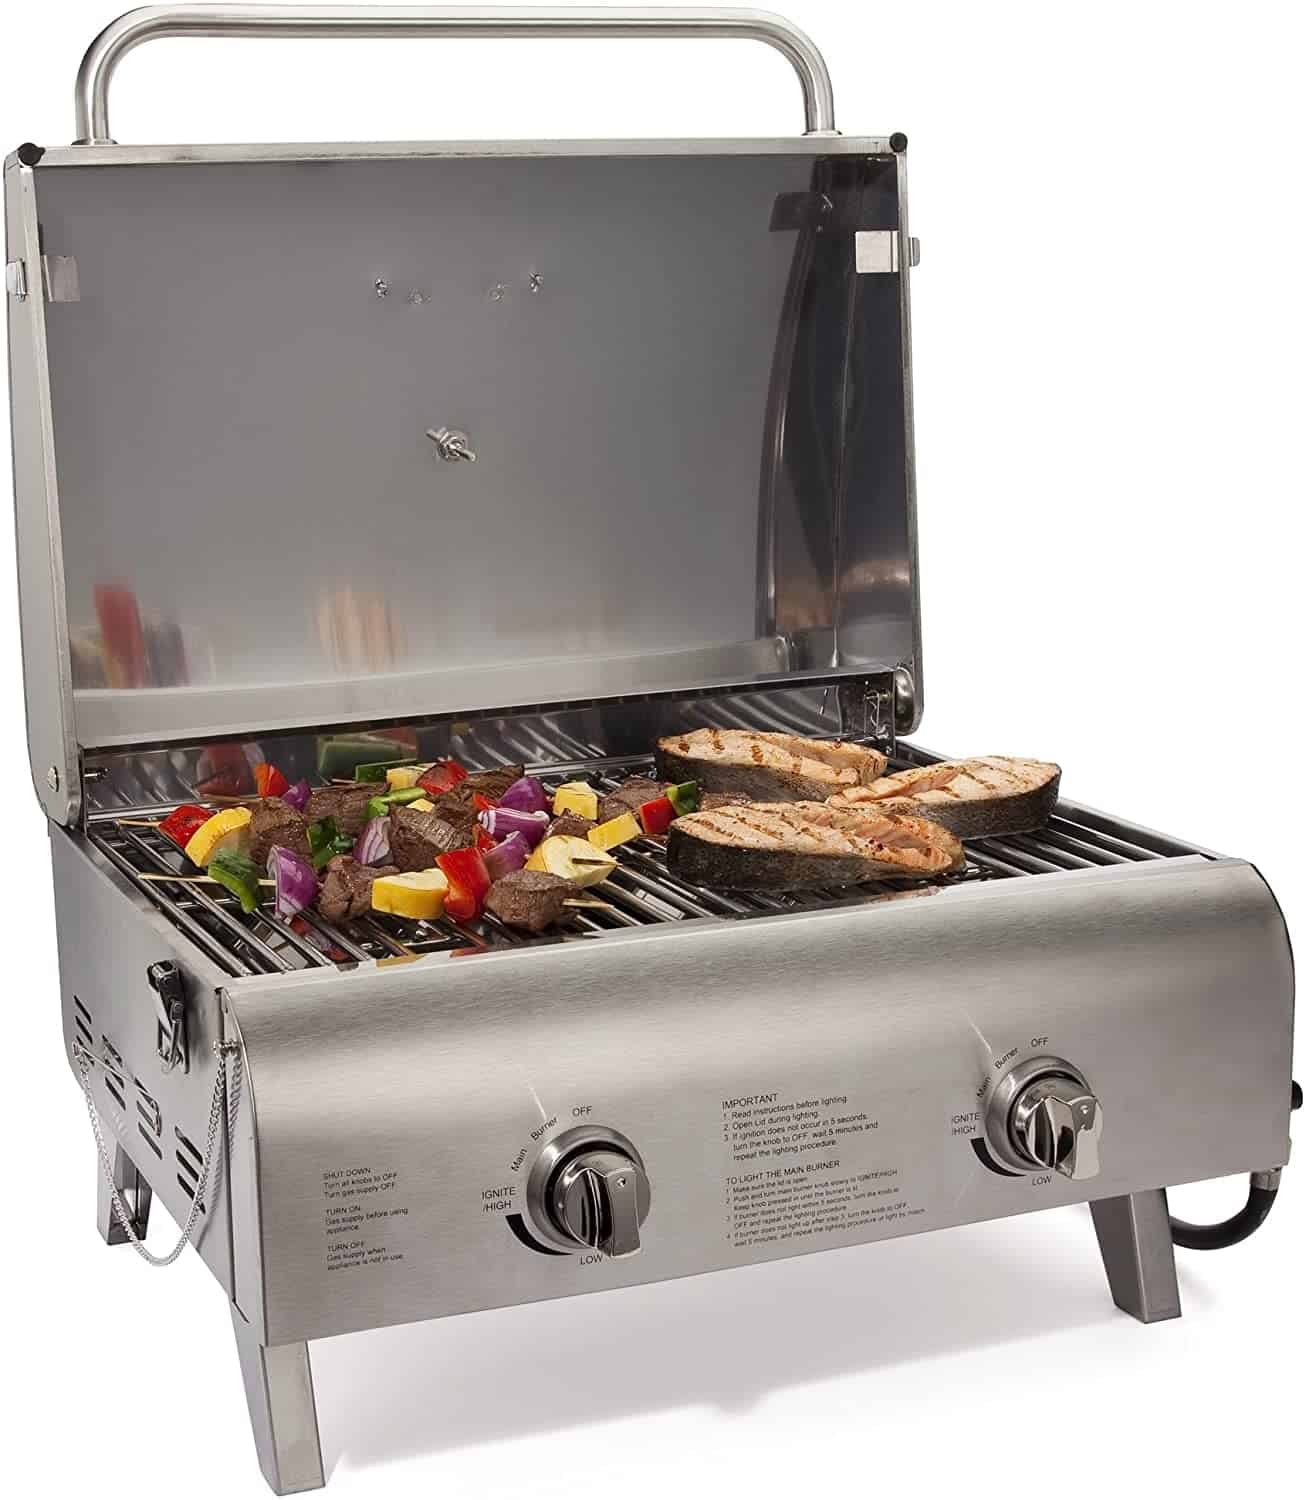 The best 2-burner tabletop grill- Cuisinart CGG-306 Chef's Style Propane